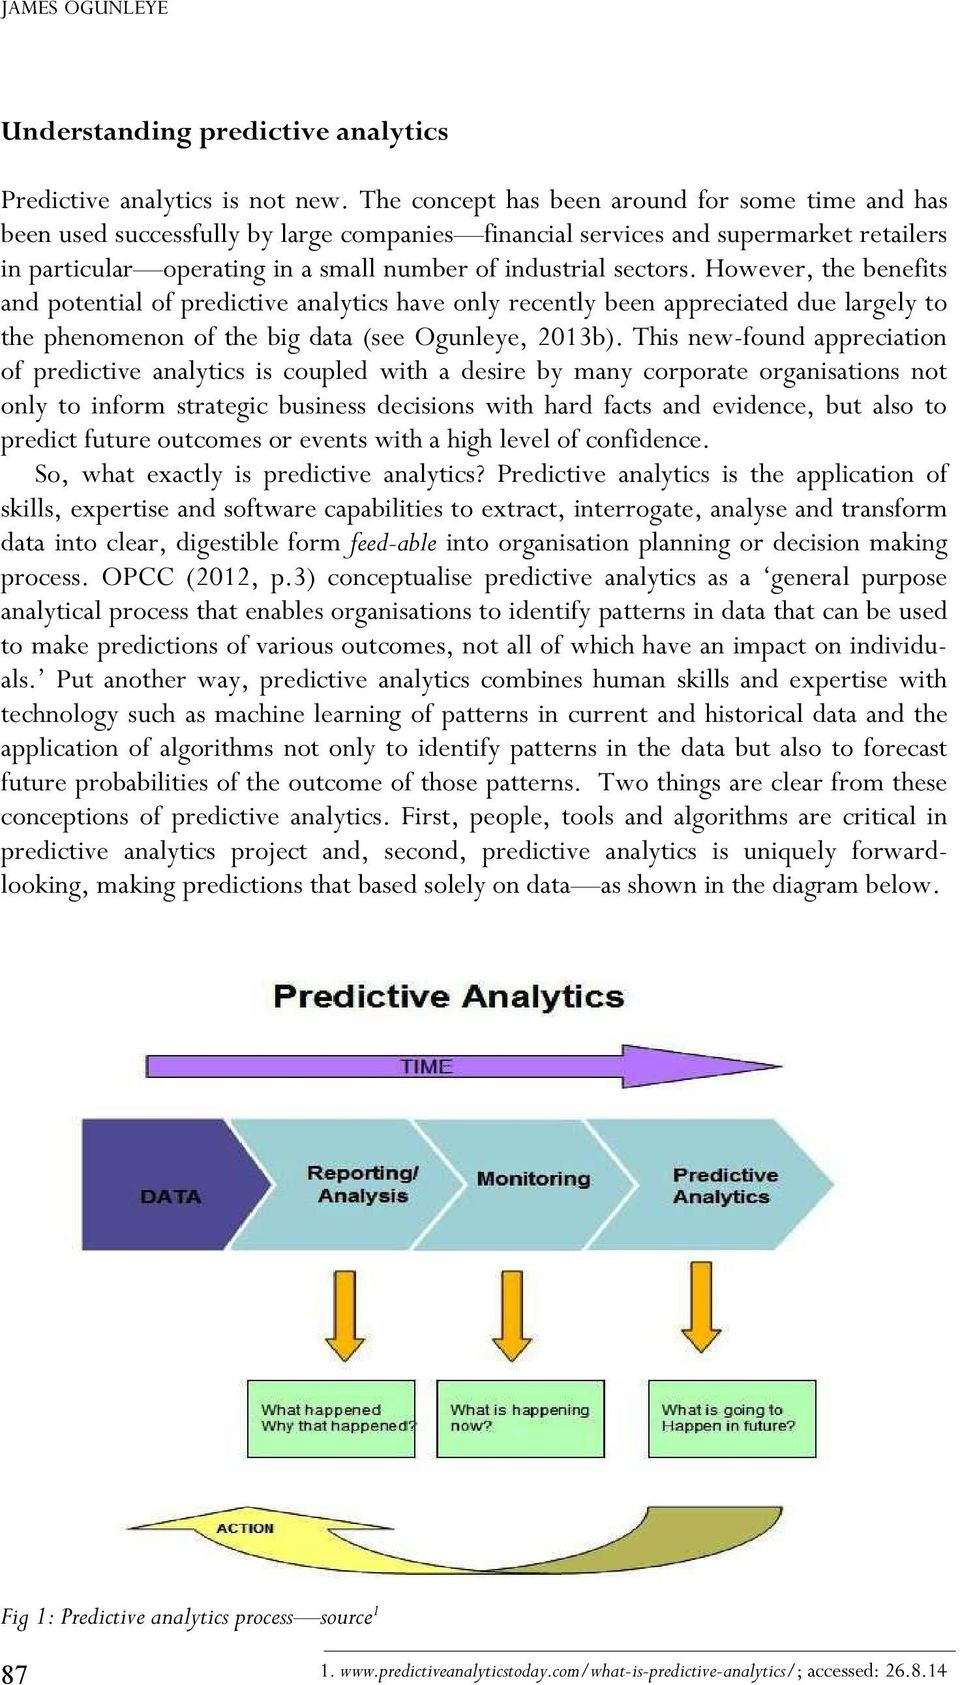 sectors. However, the benefits and potential of predictive analytics have only recently been appreciated due largely to the phenomenon of the big data (see Ogunleye, 2013b).